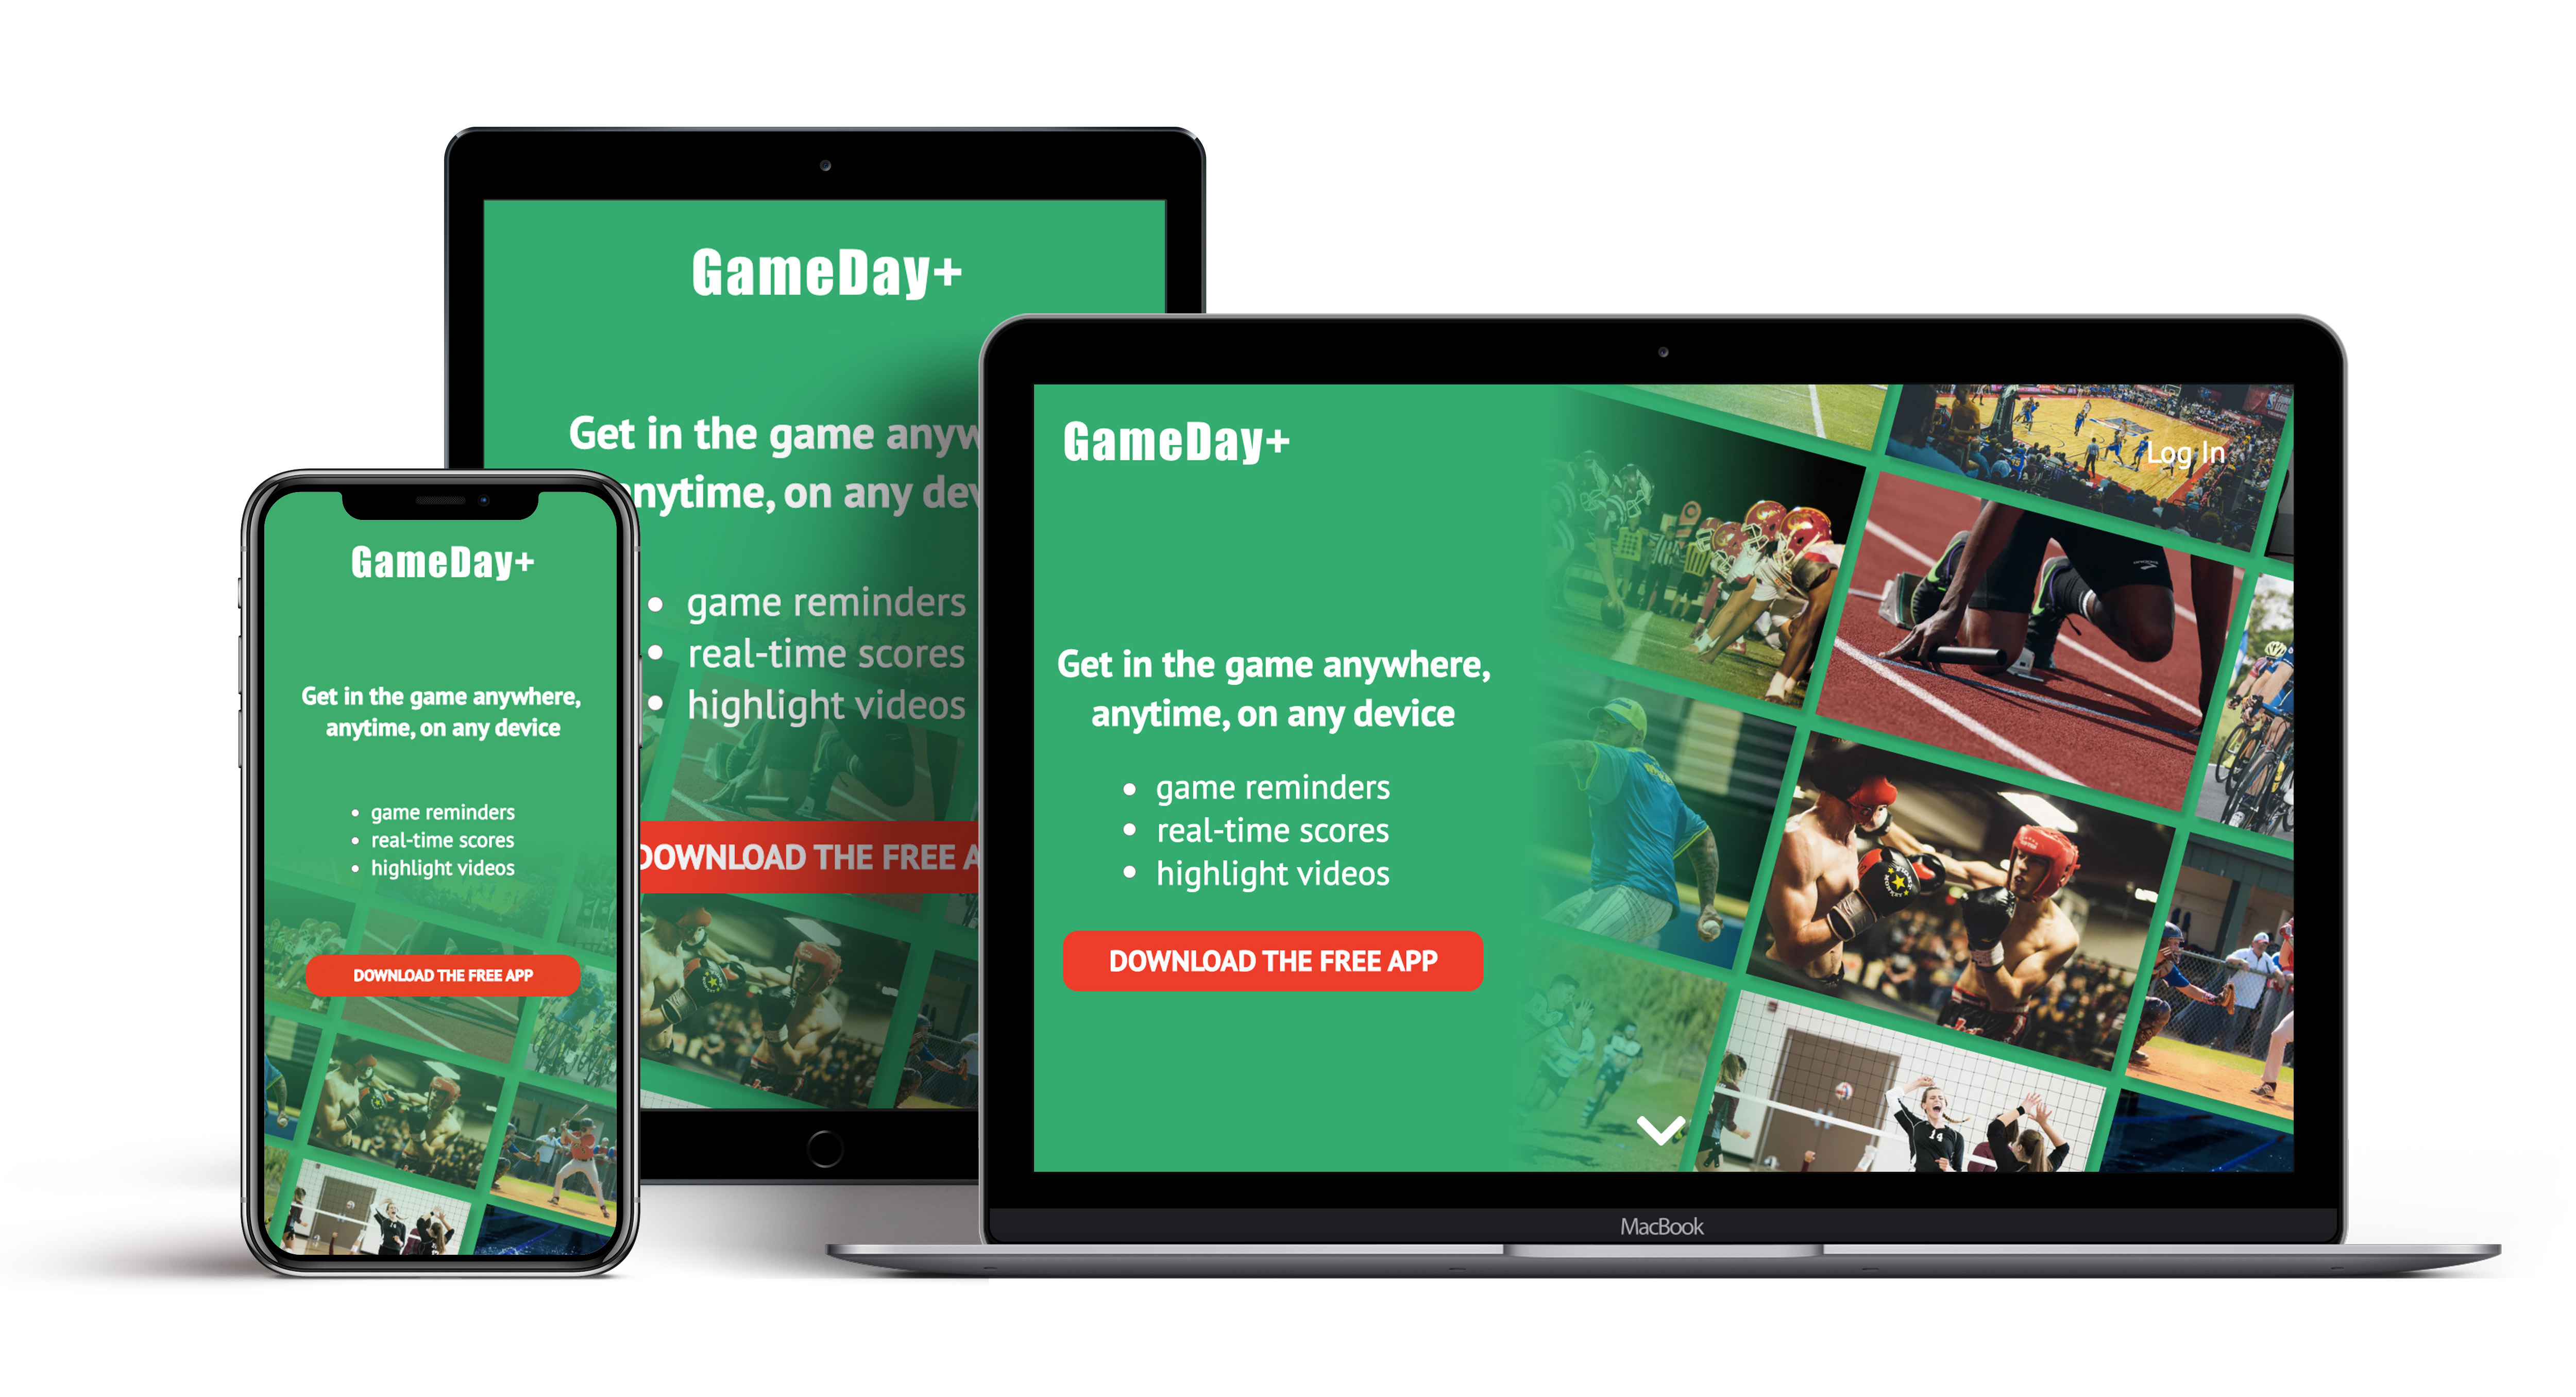 Headline: Get in the game anywhere, anytime, on any device           Body: game reminders real-time scores highlight videos           Buttons: DOWNLOAD THE FREE APP